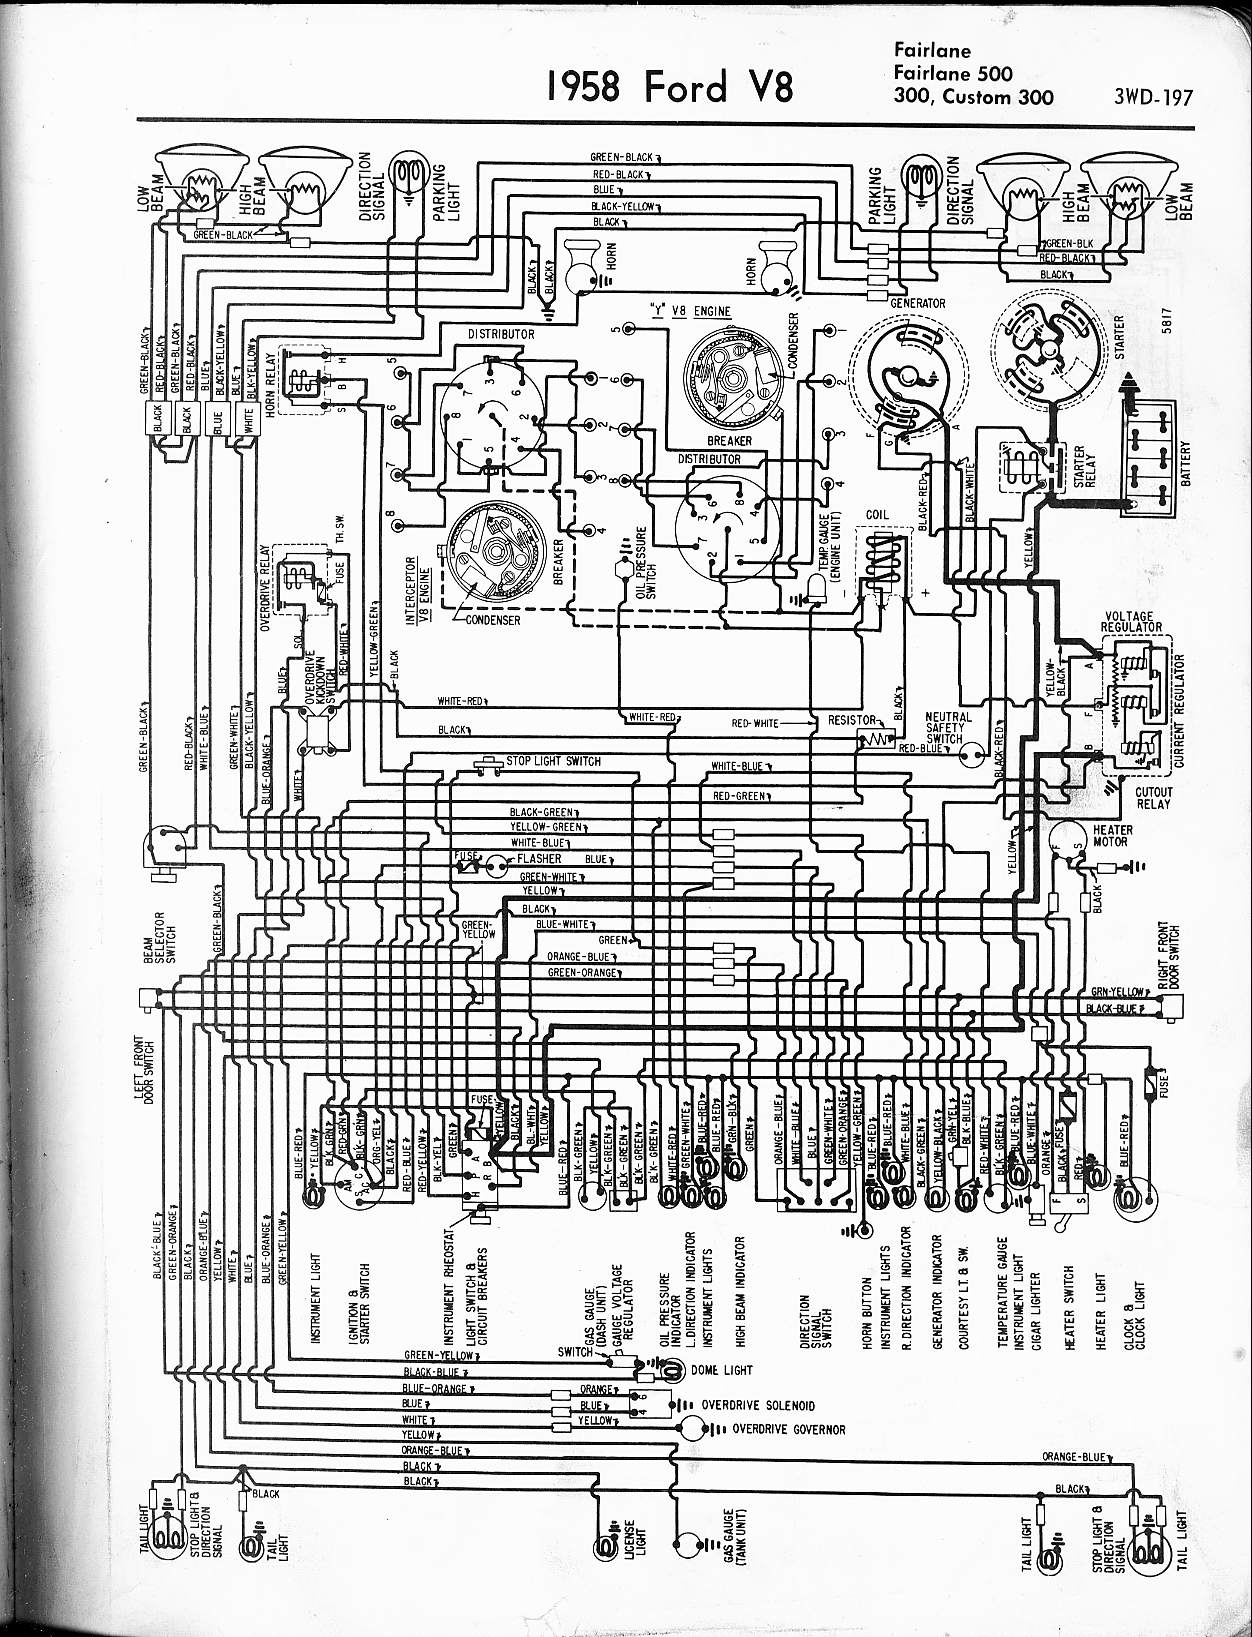 hight resolution of 1967 fairlane wiring diagram free wiring diagram todays rh 10 15 9 1813weddingbarn com 1967 vw wiring diagram 1967 ford mustang wiring diagram